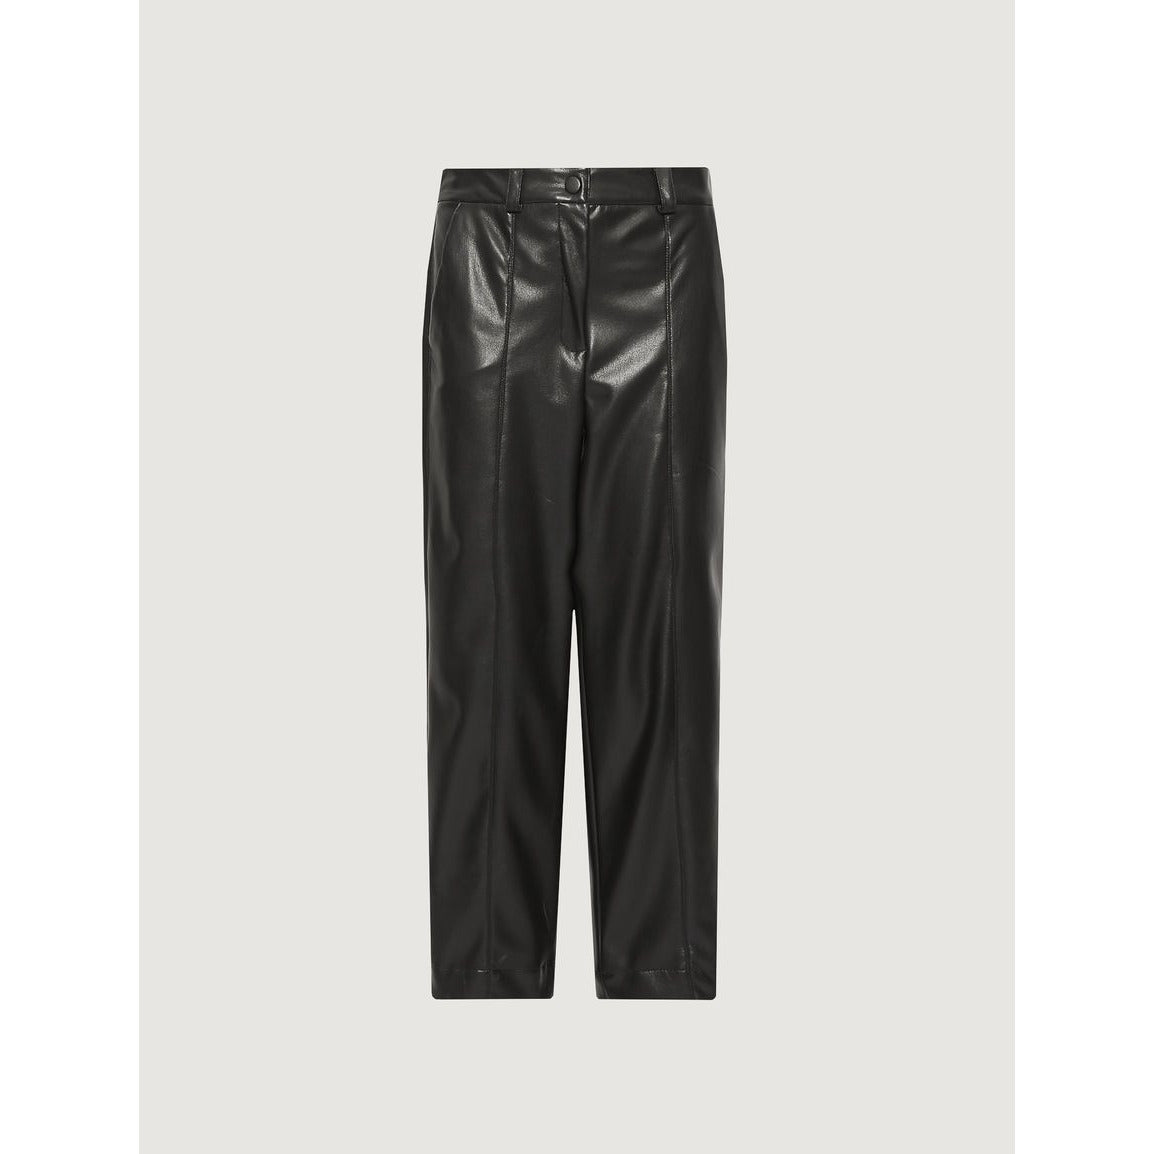 MARELLA MONICA CARROT LEG LEATHER LOOK TROUSERS BLACK